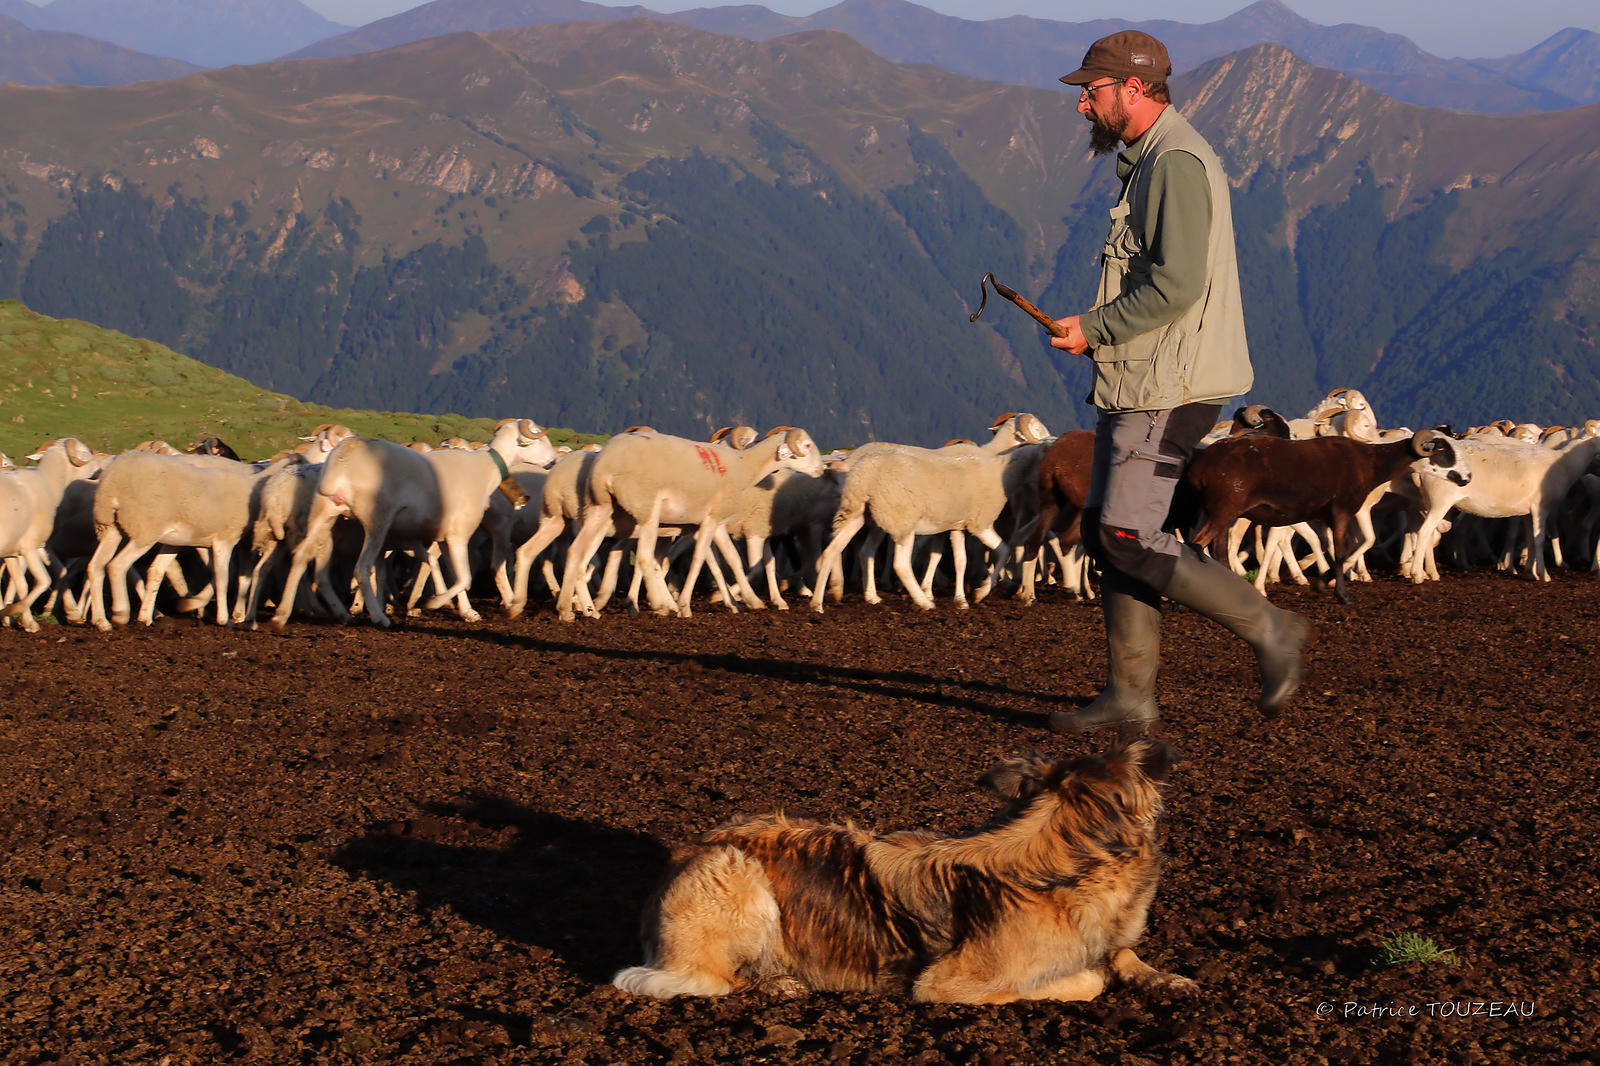 photos of shepherds in the Pyrenees